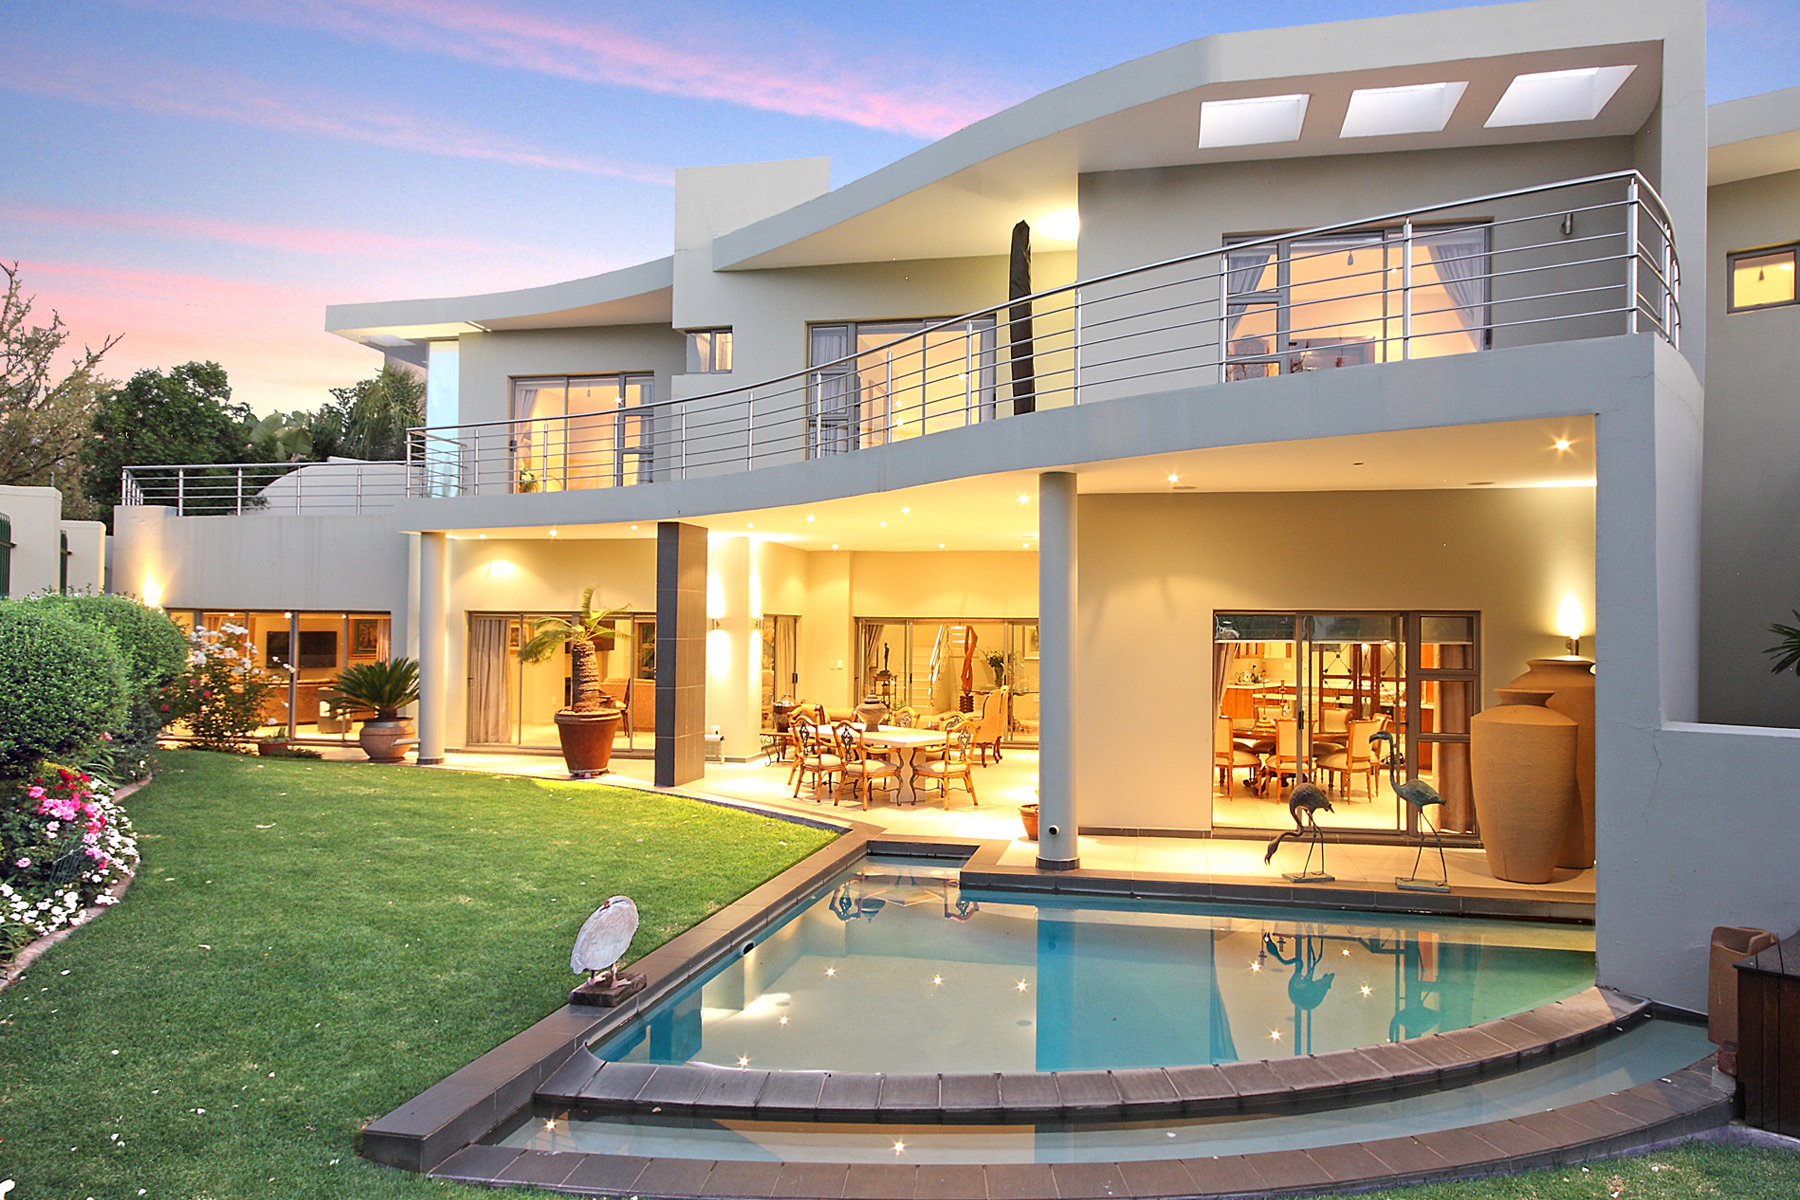 Single Family Home for Sale at Sandton Country Club Estate Johannesburg, Gauteng, South Africa